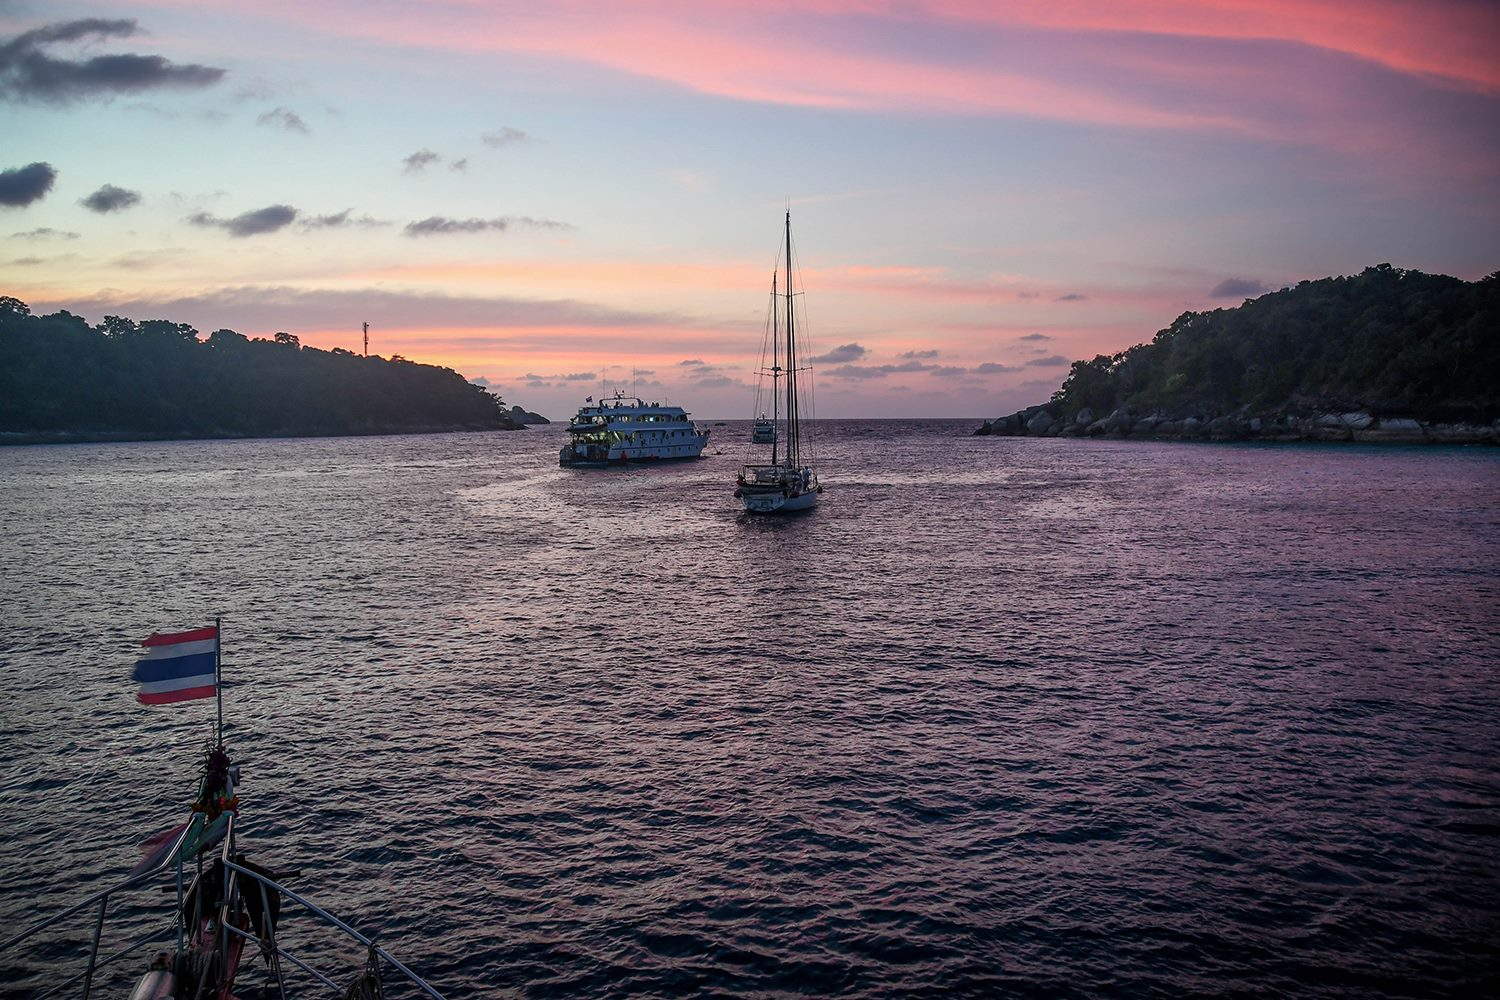 Similan Islands Liveaboard Wicked Diving Thailand Sunset